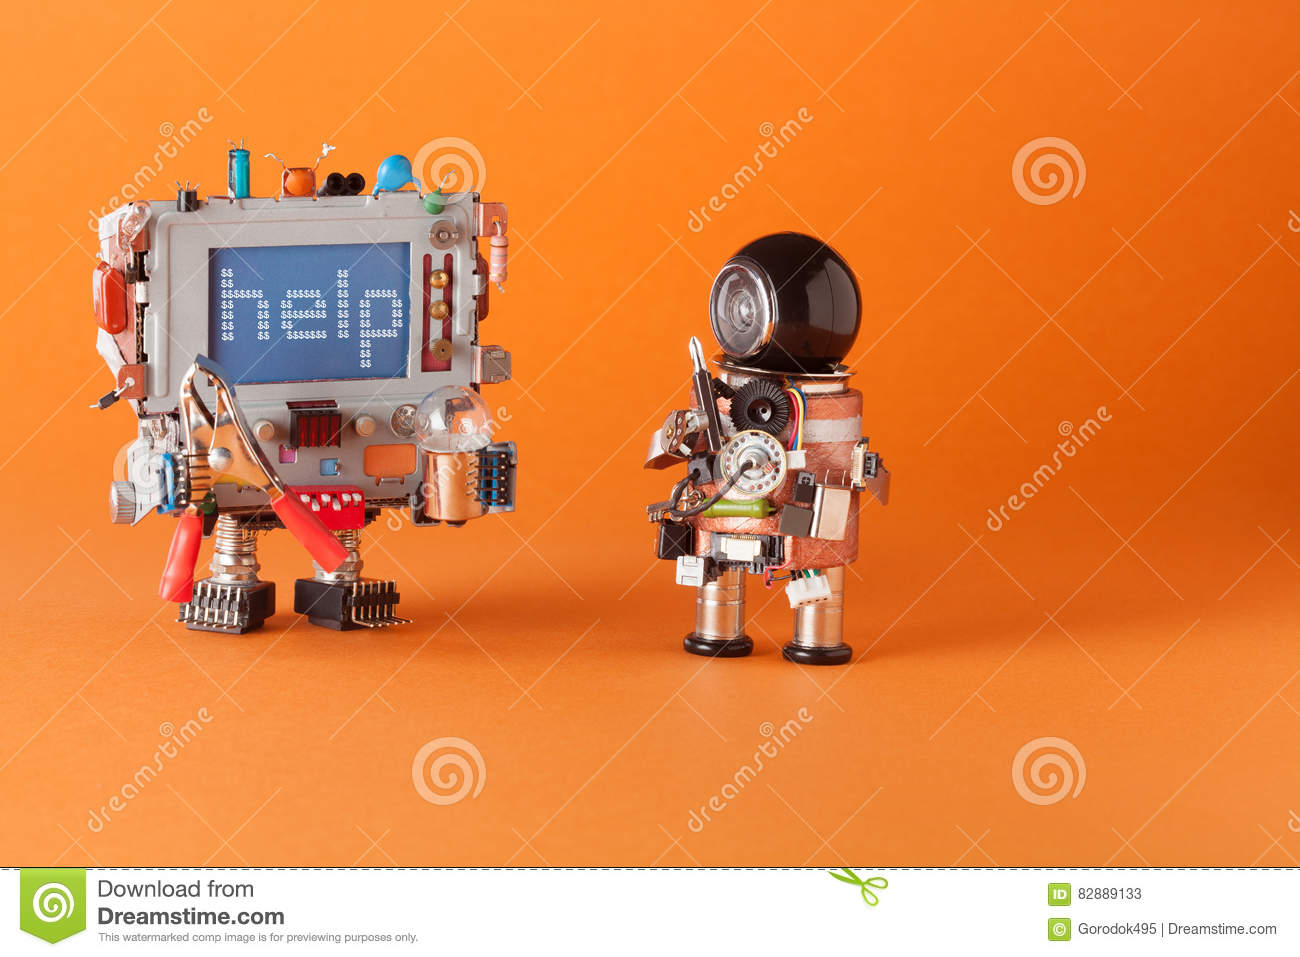 Fixing computer repair center concept. Serviceman robot with screwdriver engineer capacitor, pliers light bulb. Warning